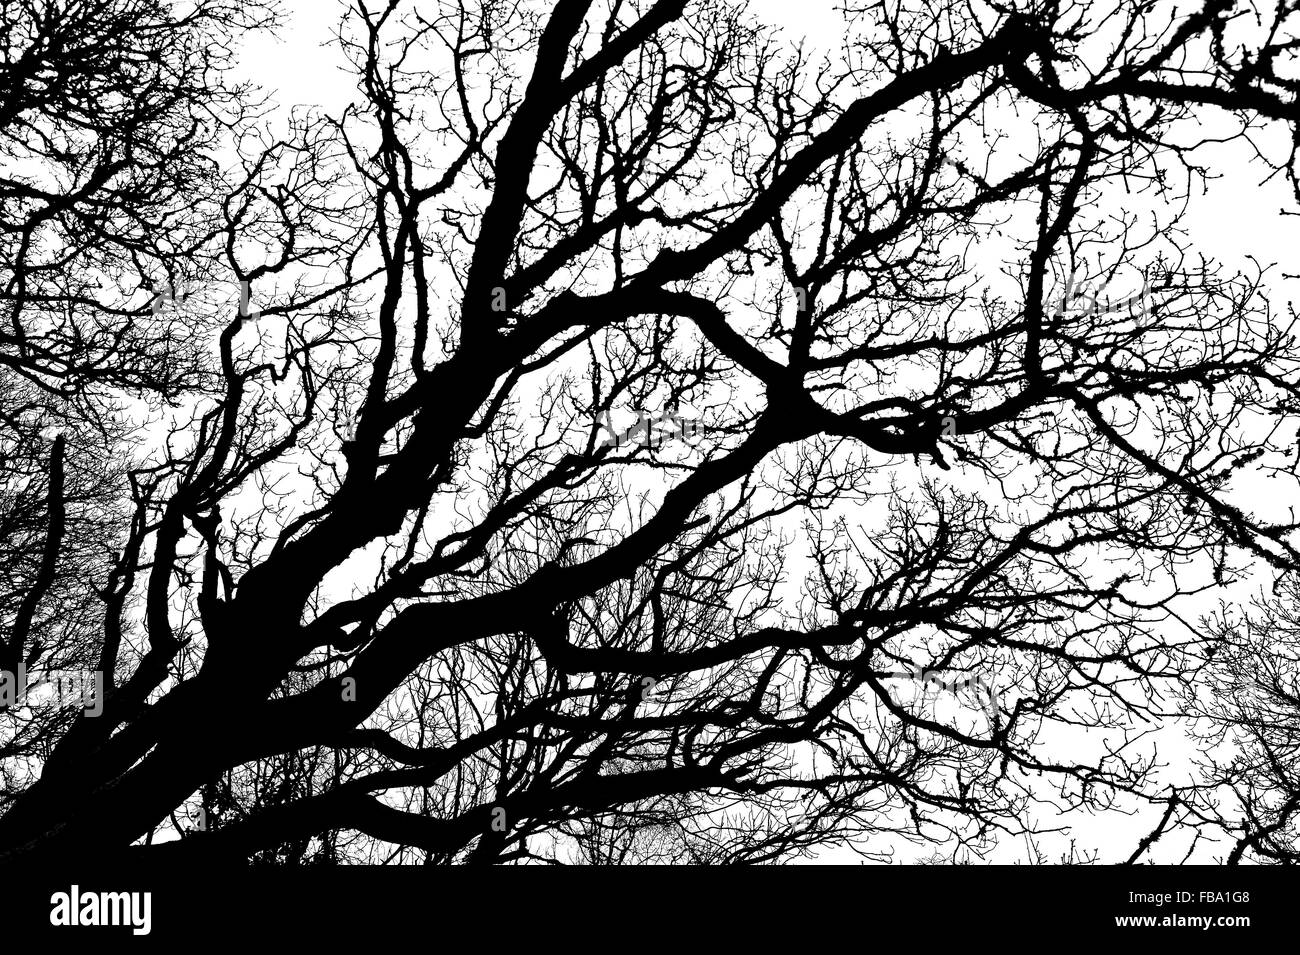 black and white abstract silhouette of winter tree